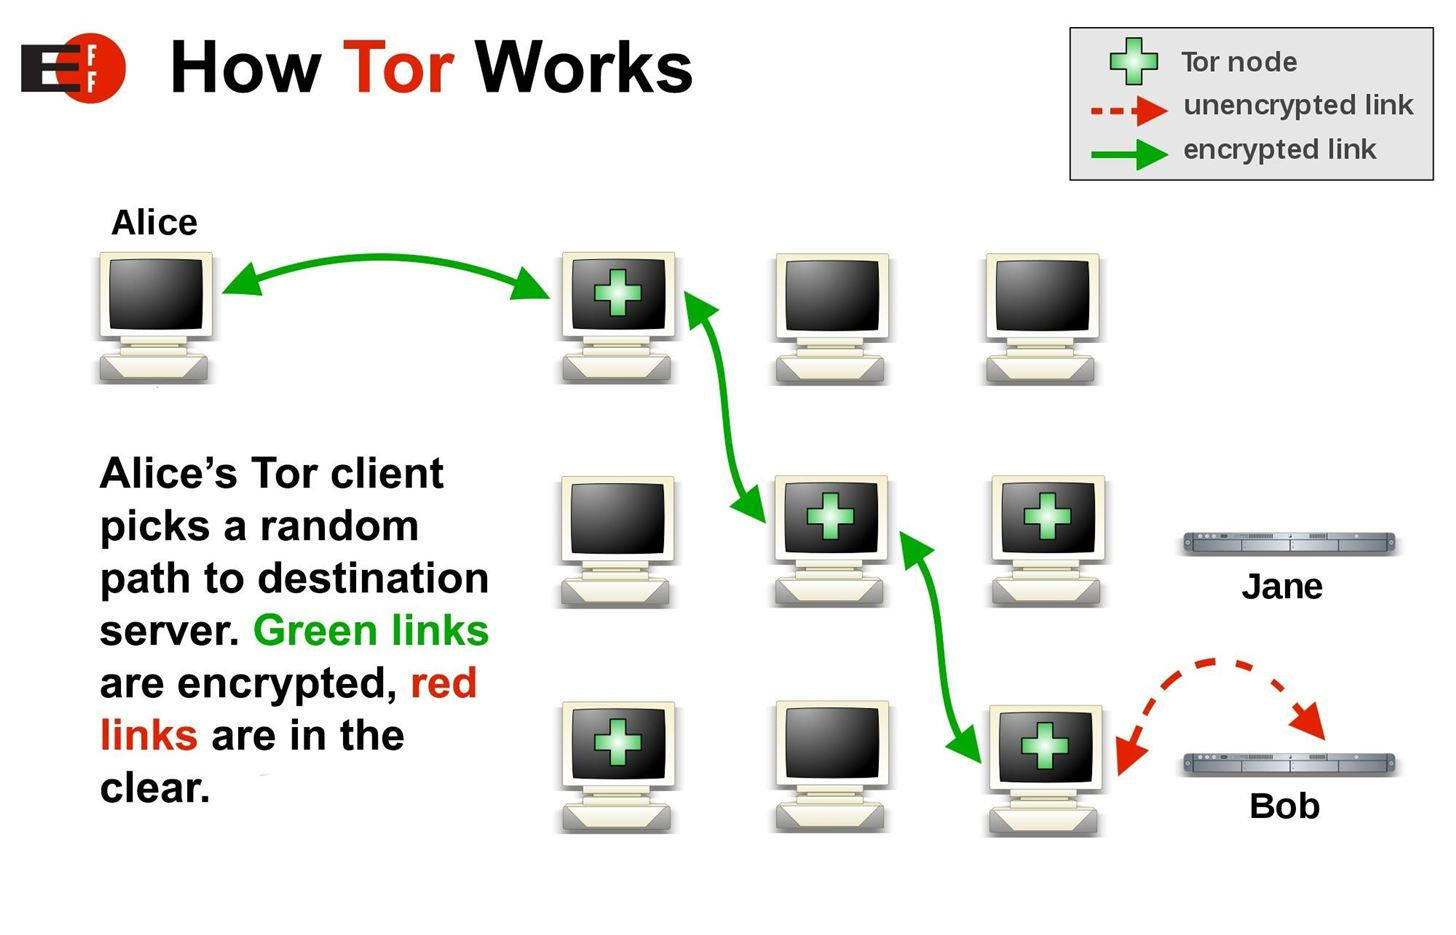 How to access the dark web while staying anonymous with tor null a description of how the tor network functions image via electronic frontier foundation ccuart Choice Image